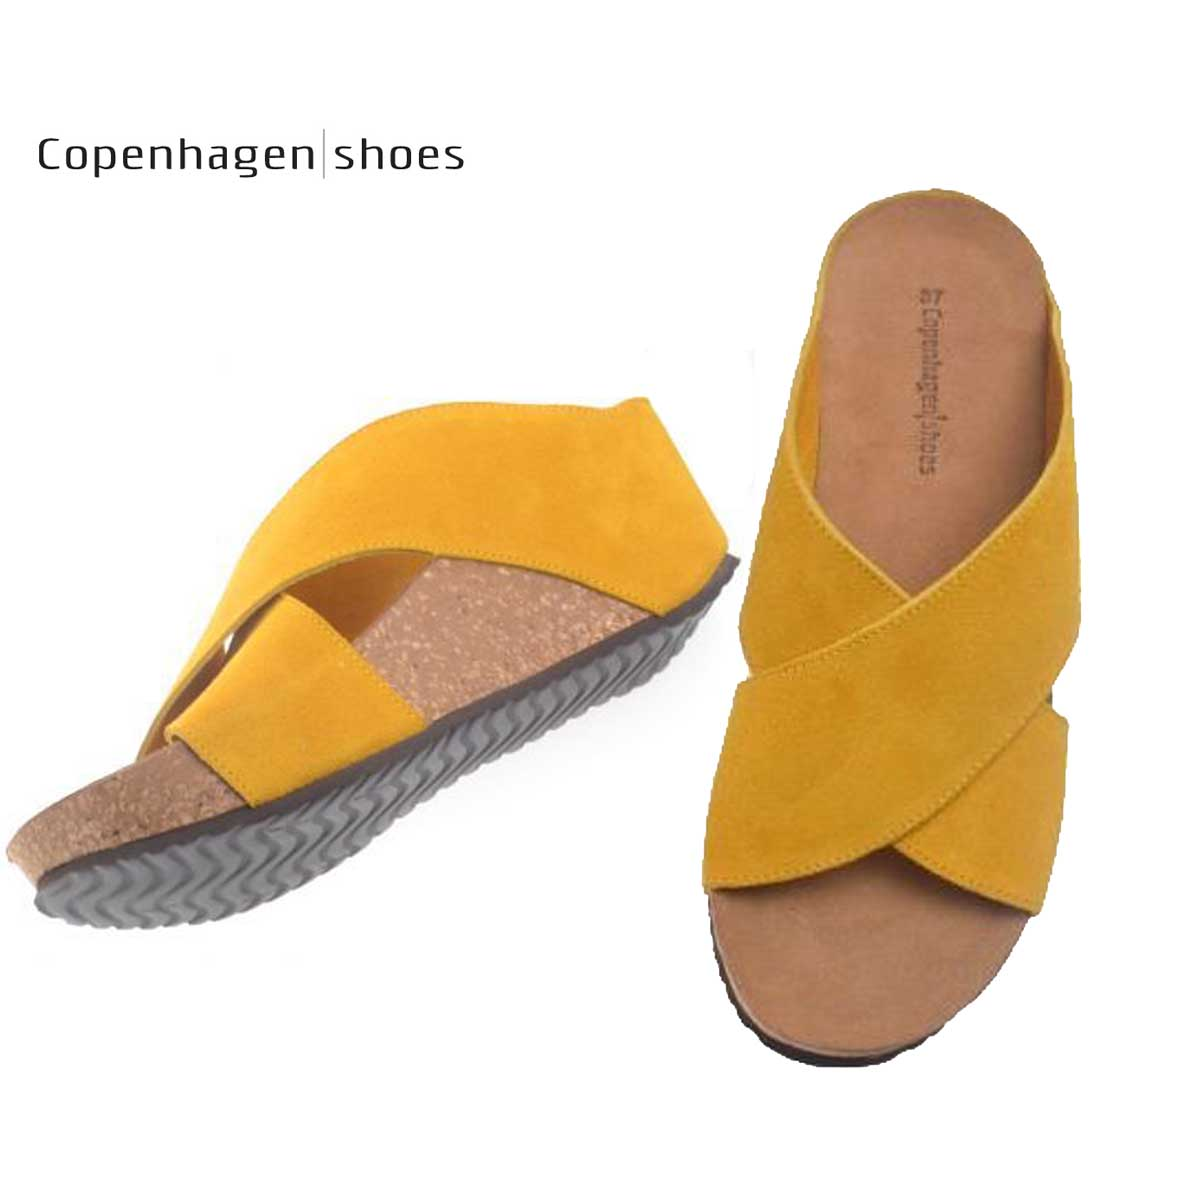 341d54bbb04 Copenhagen shoes<br> Frances Y - COPENHAGEN SHOES - Fruens Hus